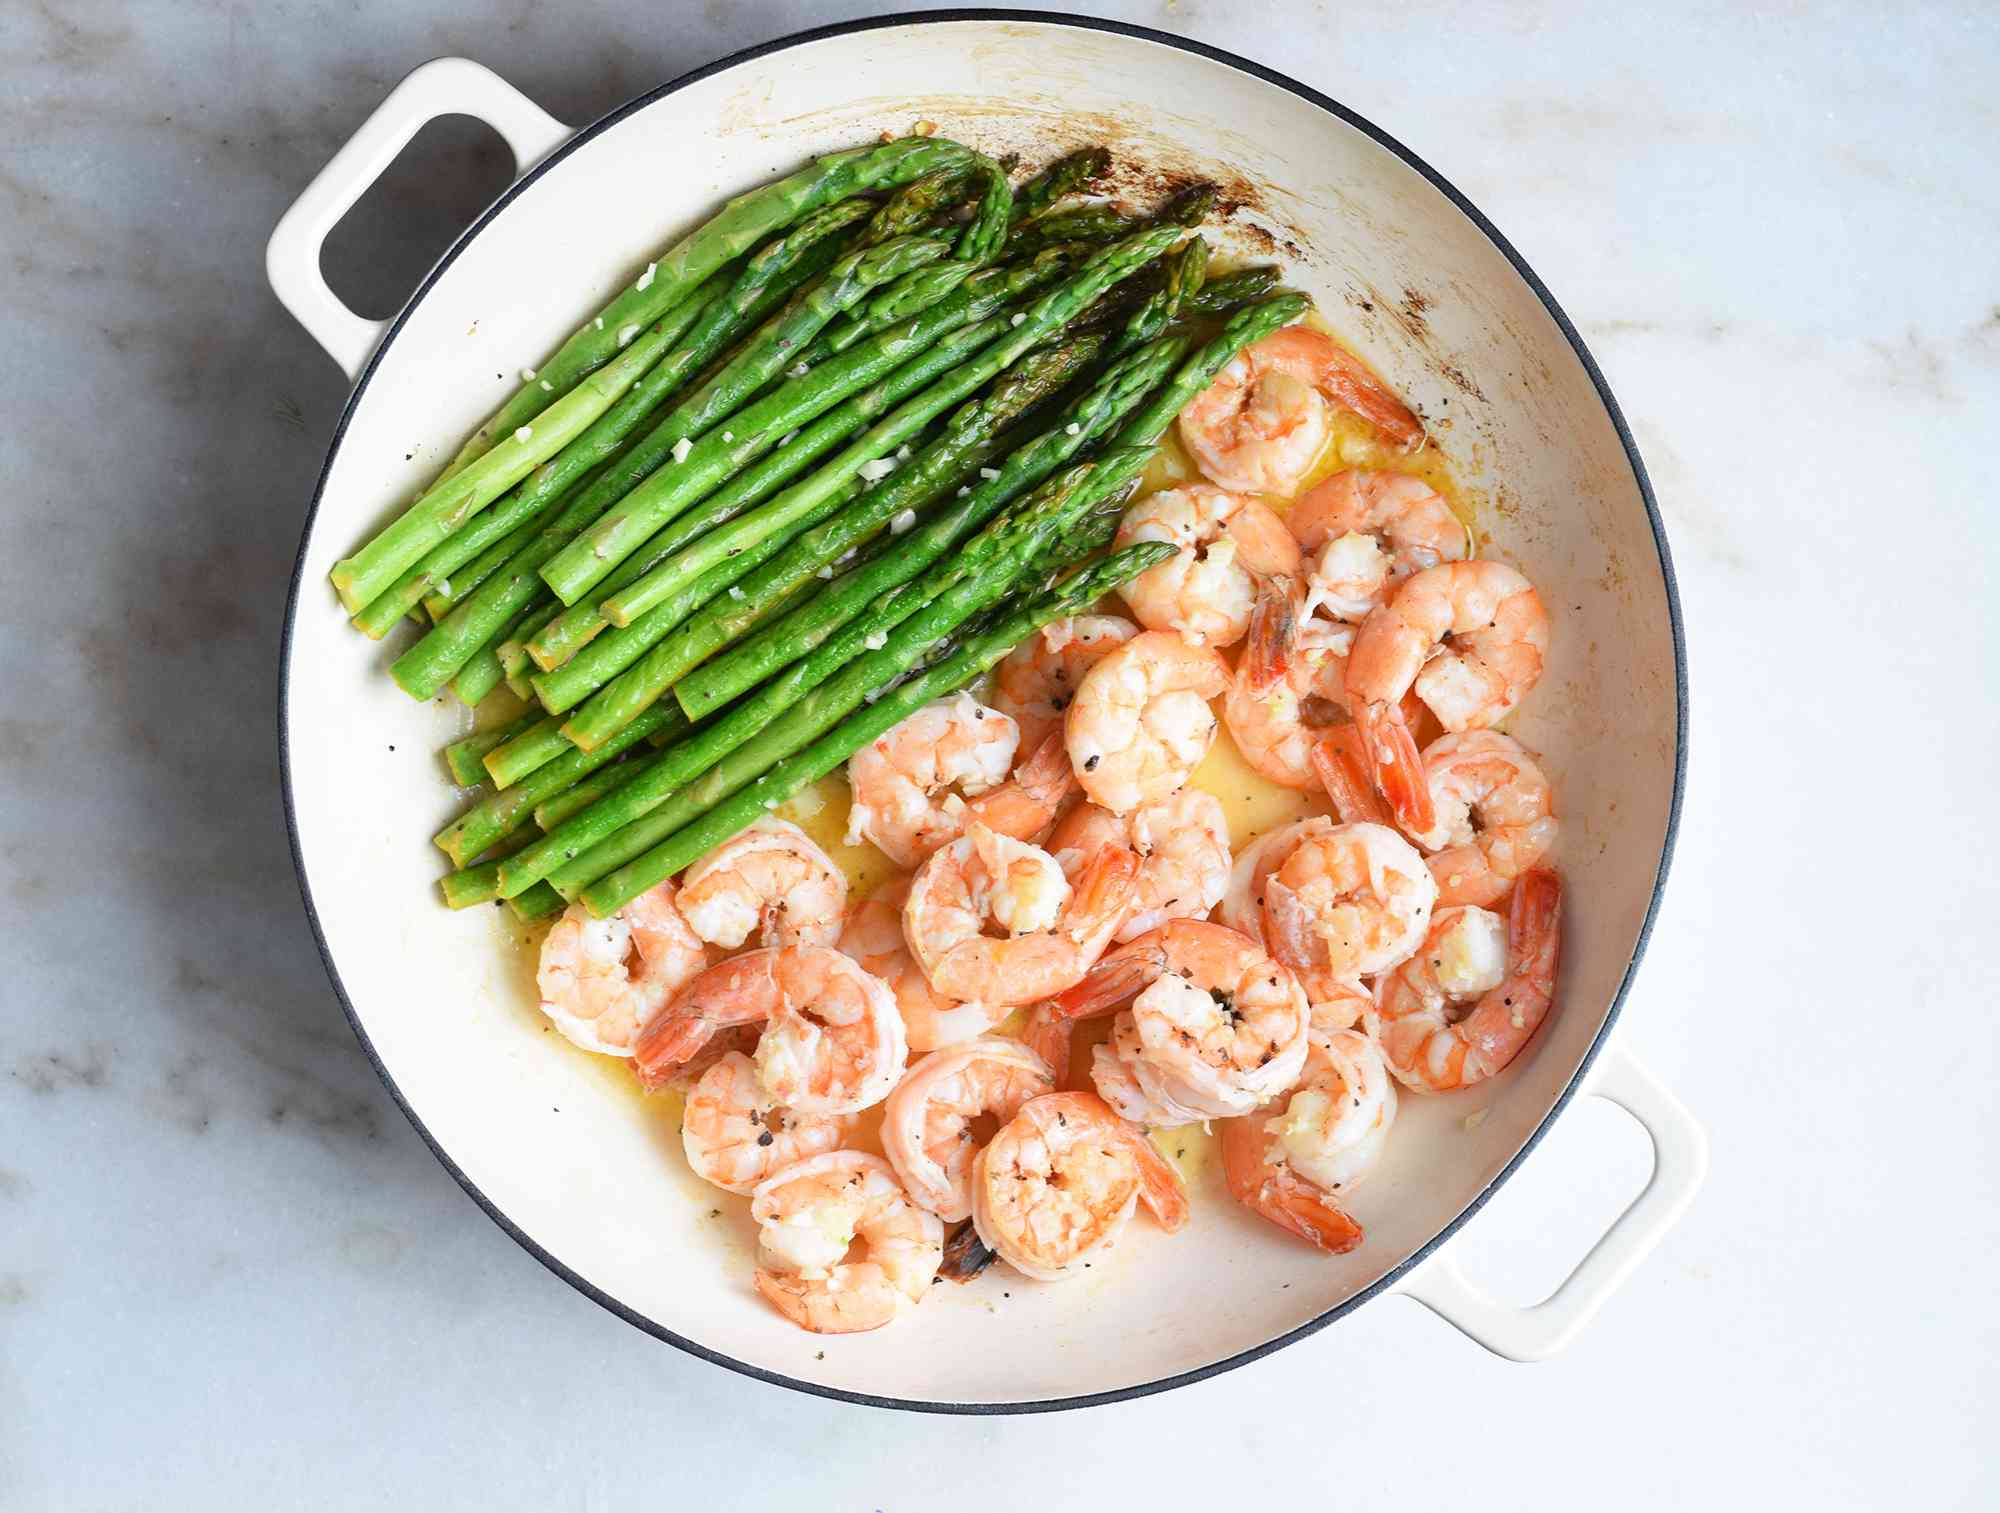 cooked shrimp and asaparagus in one pan